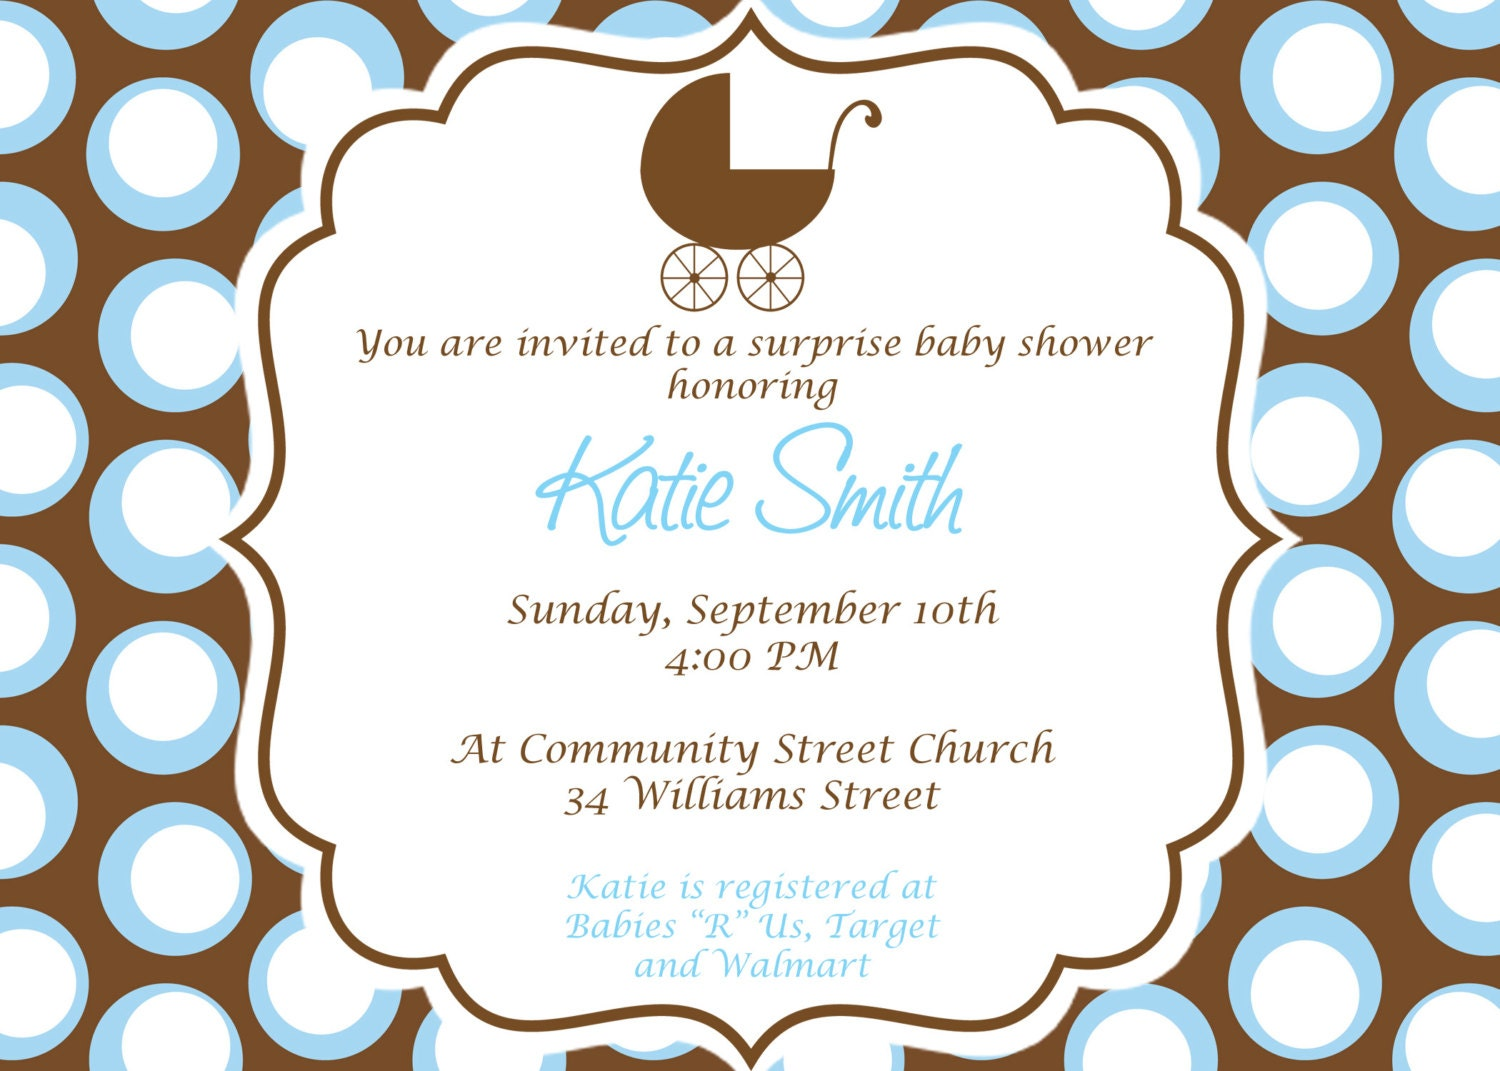 Baby Shower Invitations For A Boy for your inspiration to make invitation template look beautiful